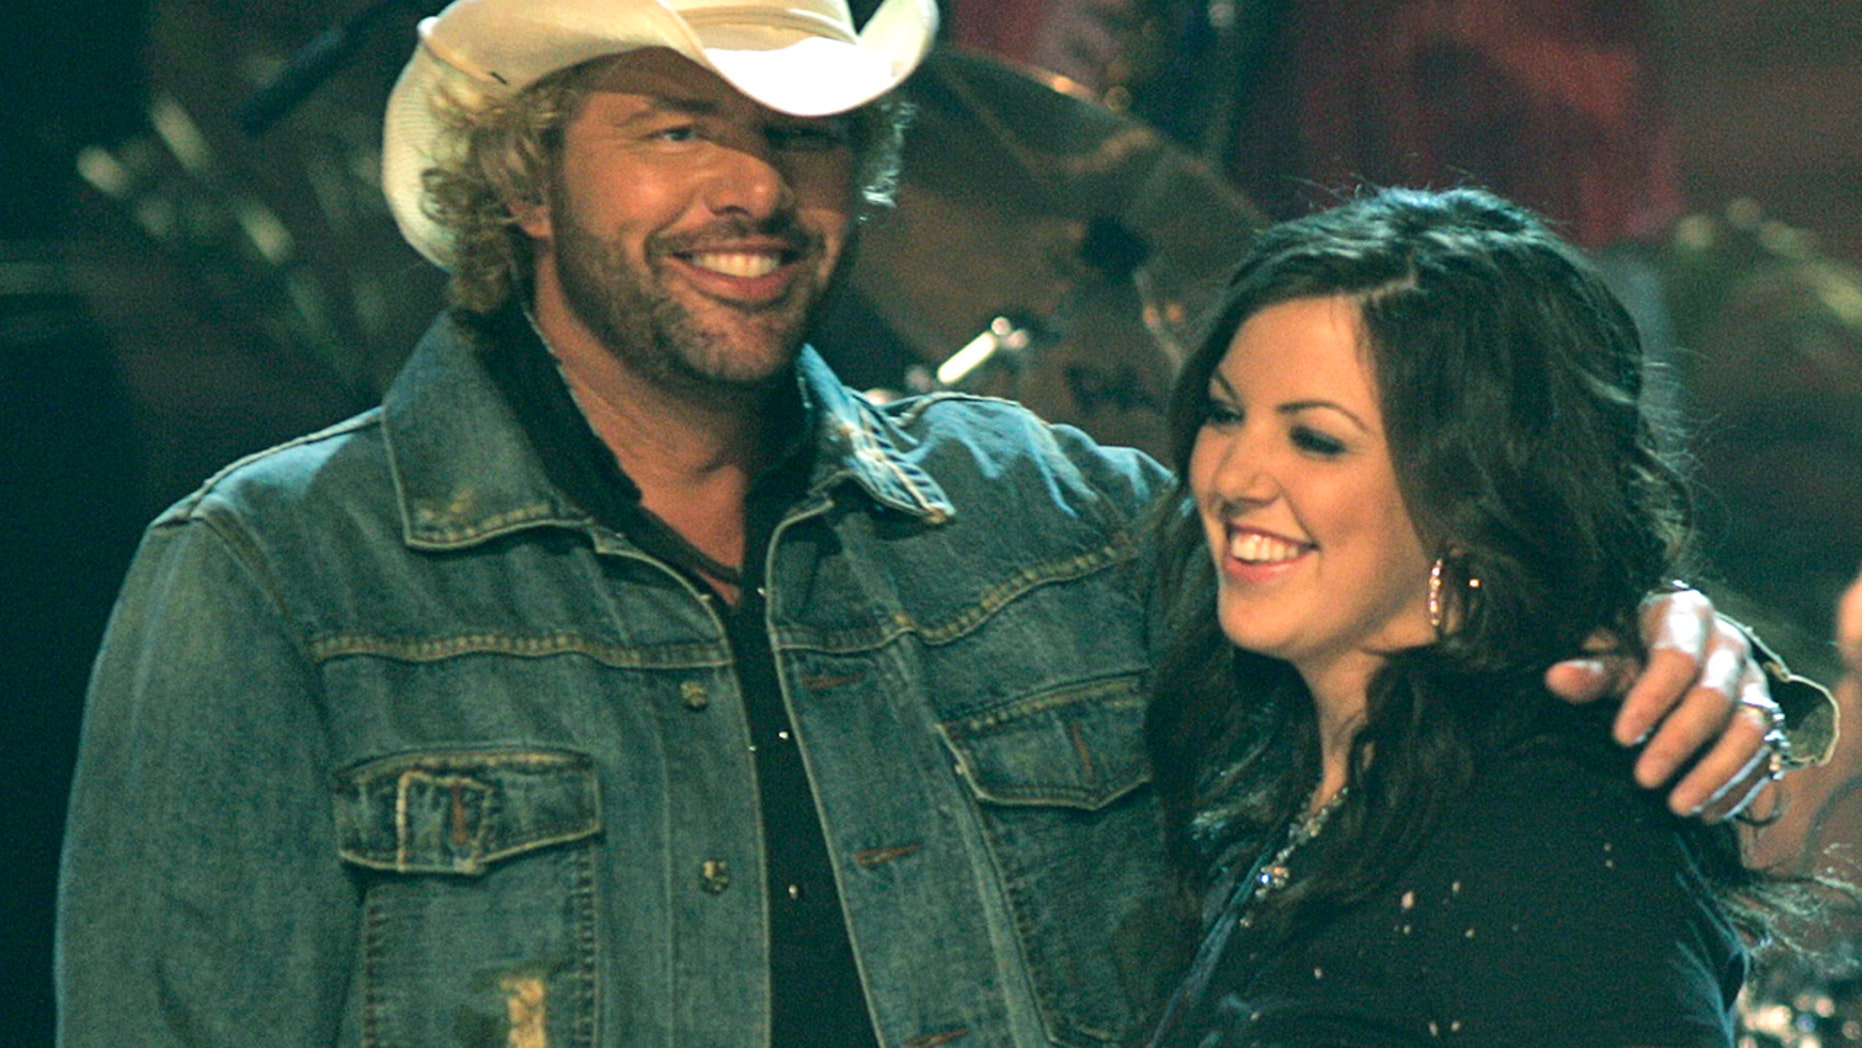 """Country Music artist Toby Keith and his daughter Krystal Sage onstage after performing """"Mockingbird"""" during the 38th annual Country Music Association Awards show at the Grand Ole Opry in Nashville, Tennessee, November 9, 2004."""